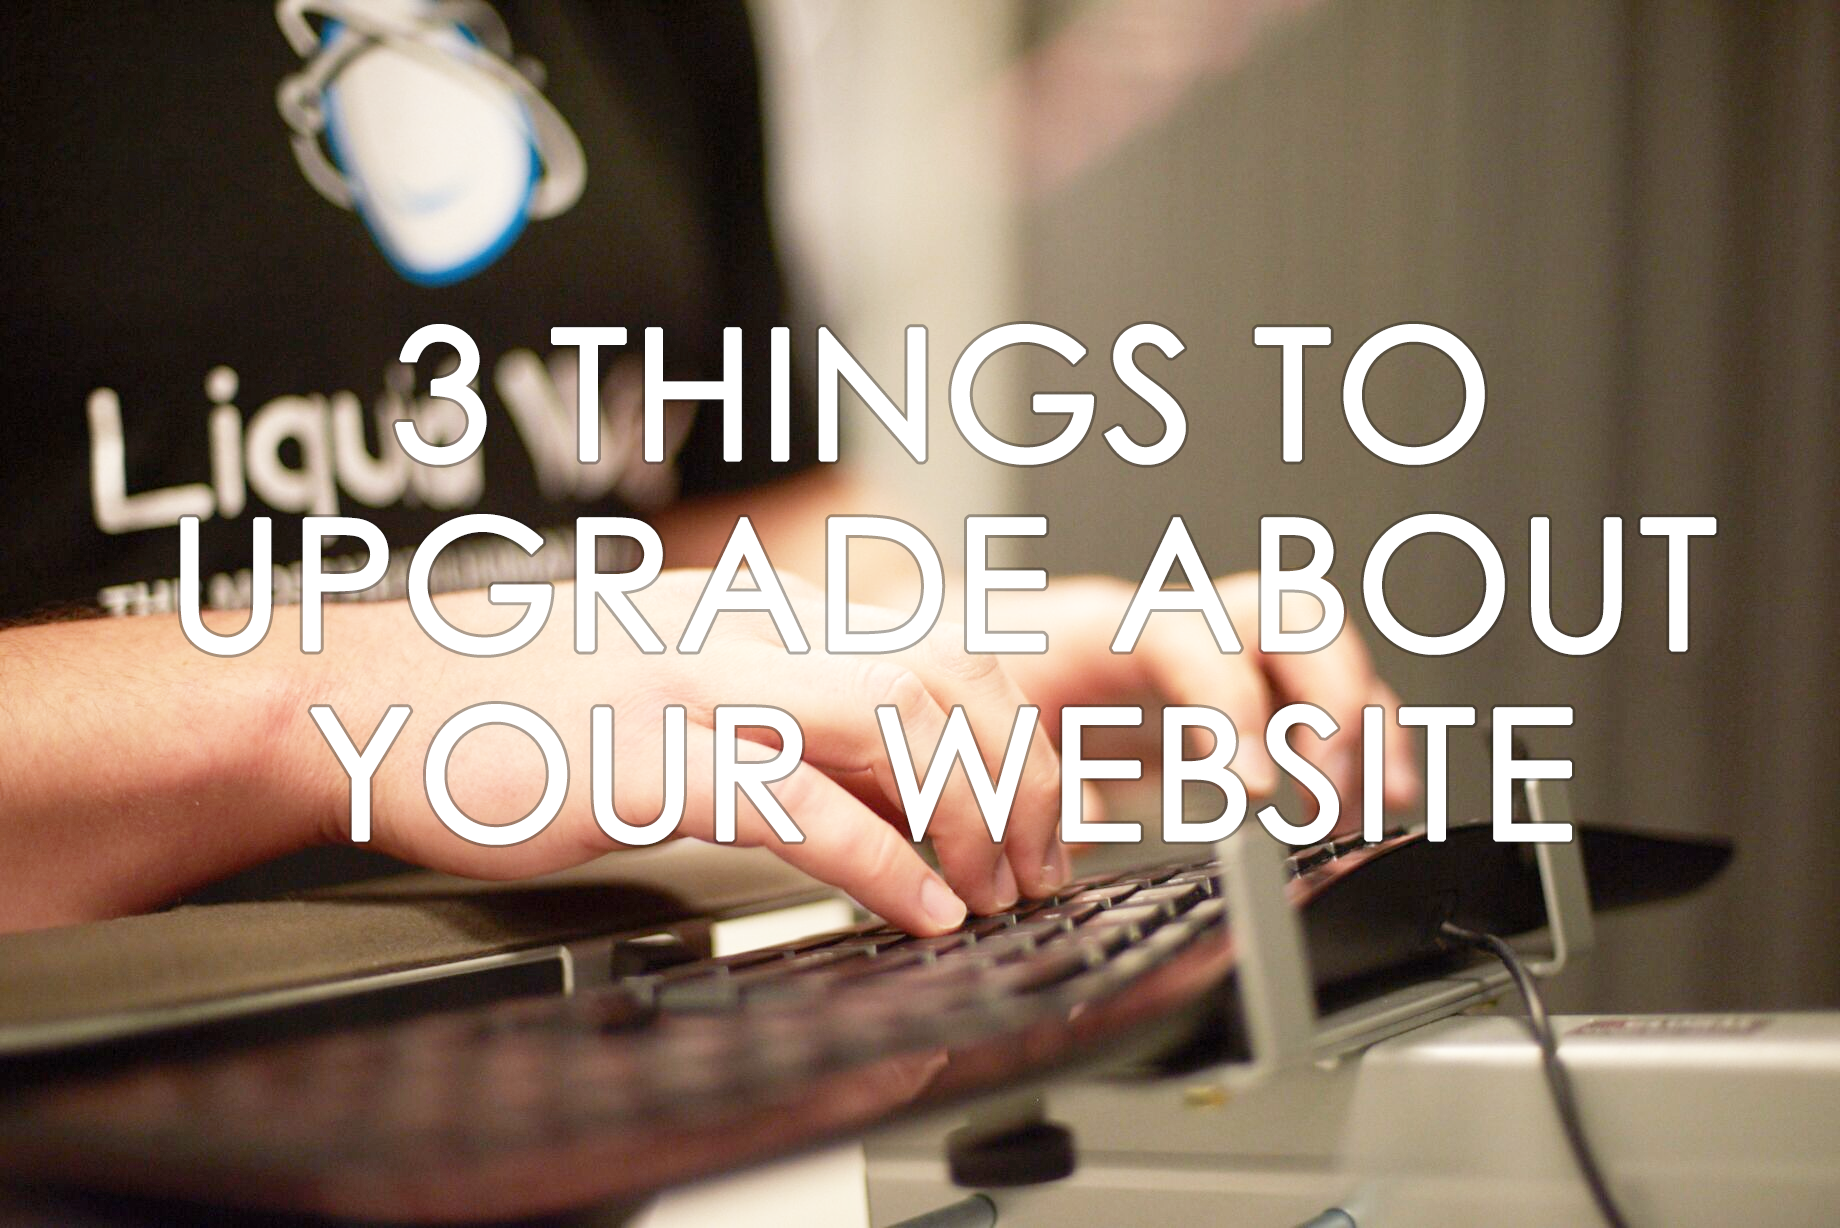 3 Things to Upgrade About Your Website